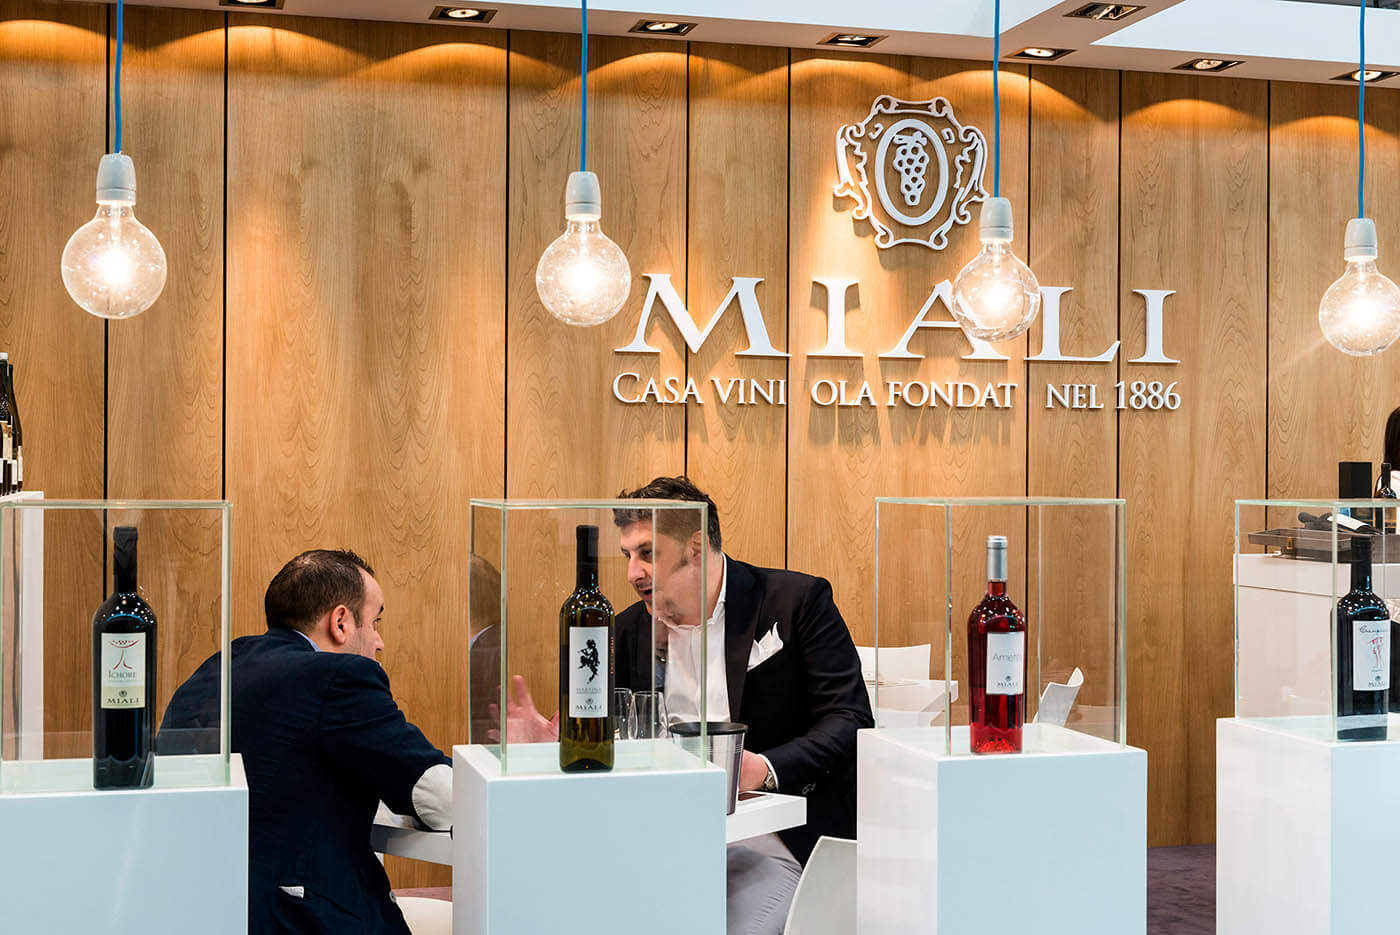 stand vinitaly cantine miali